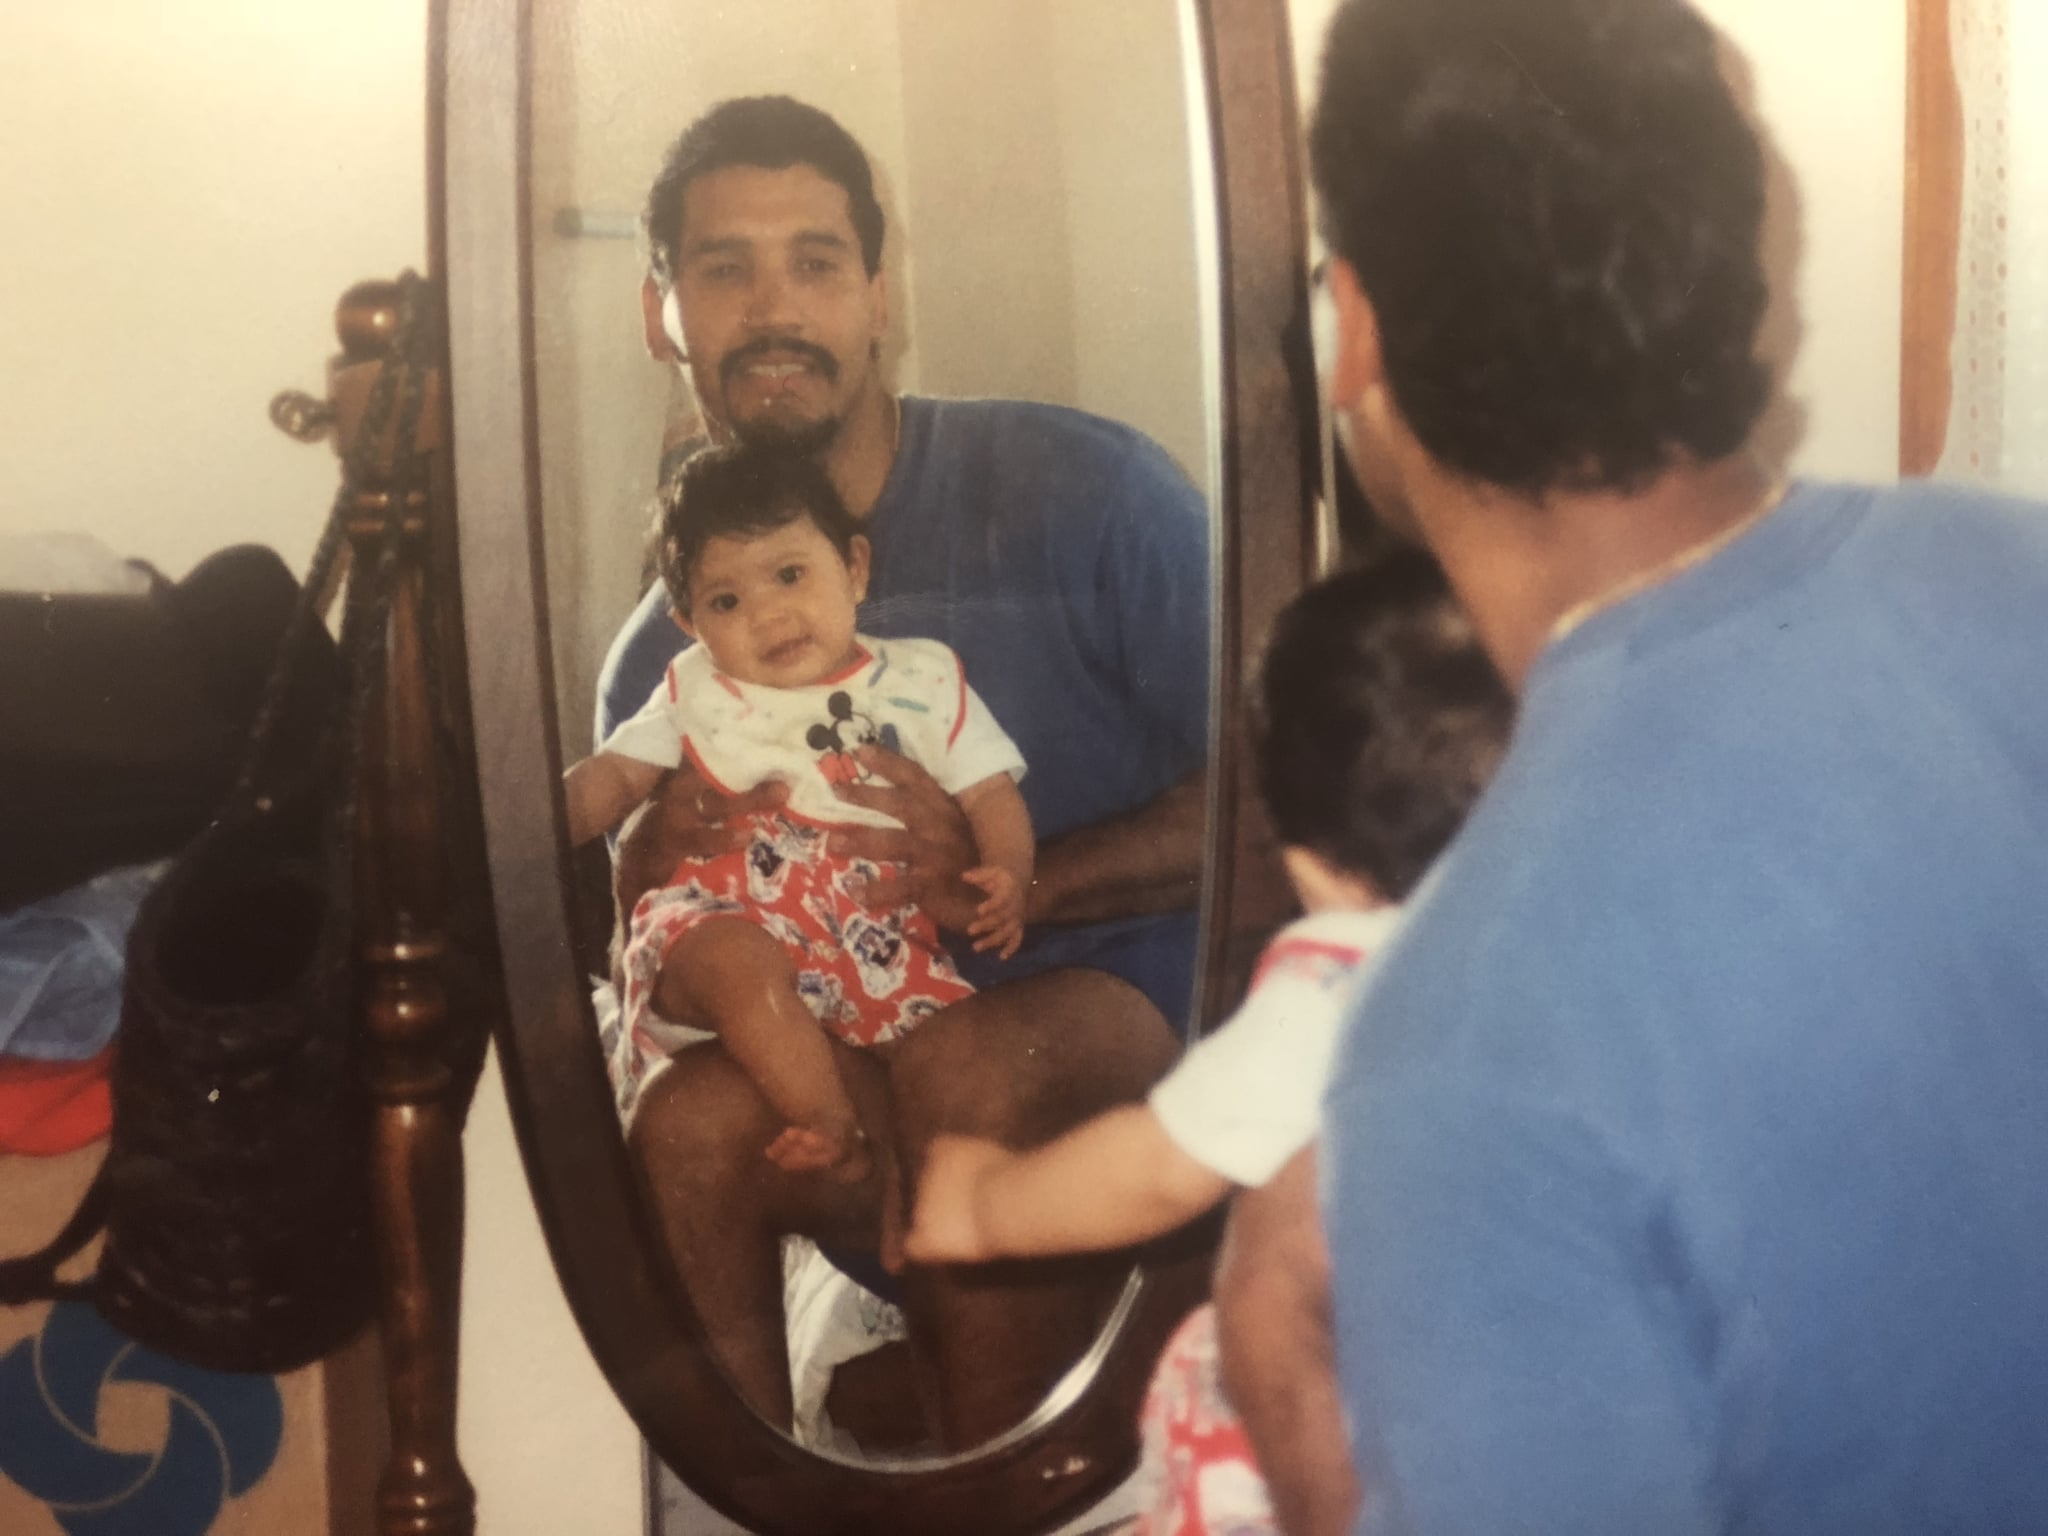 A 90s selfie with my father, el conguero.